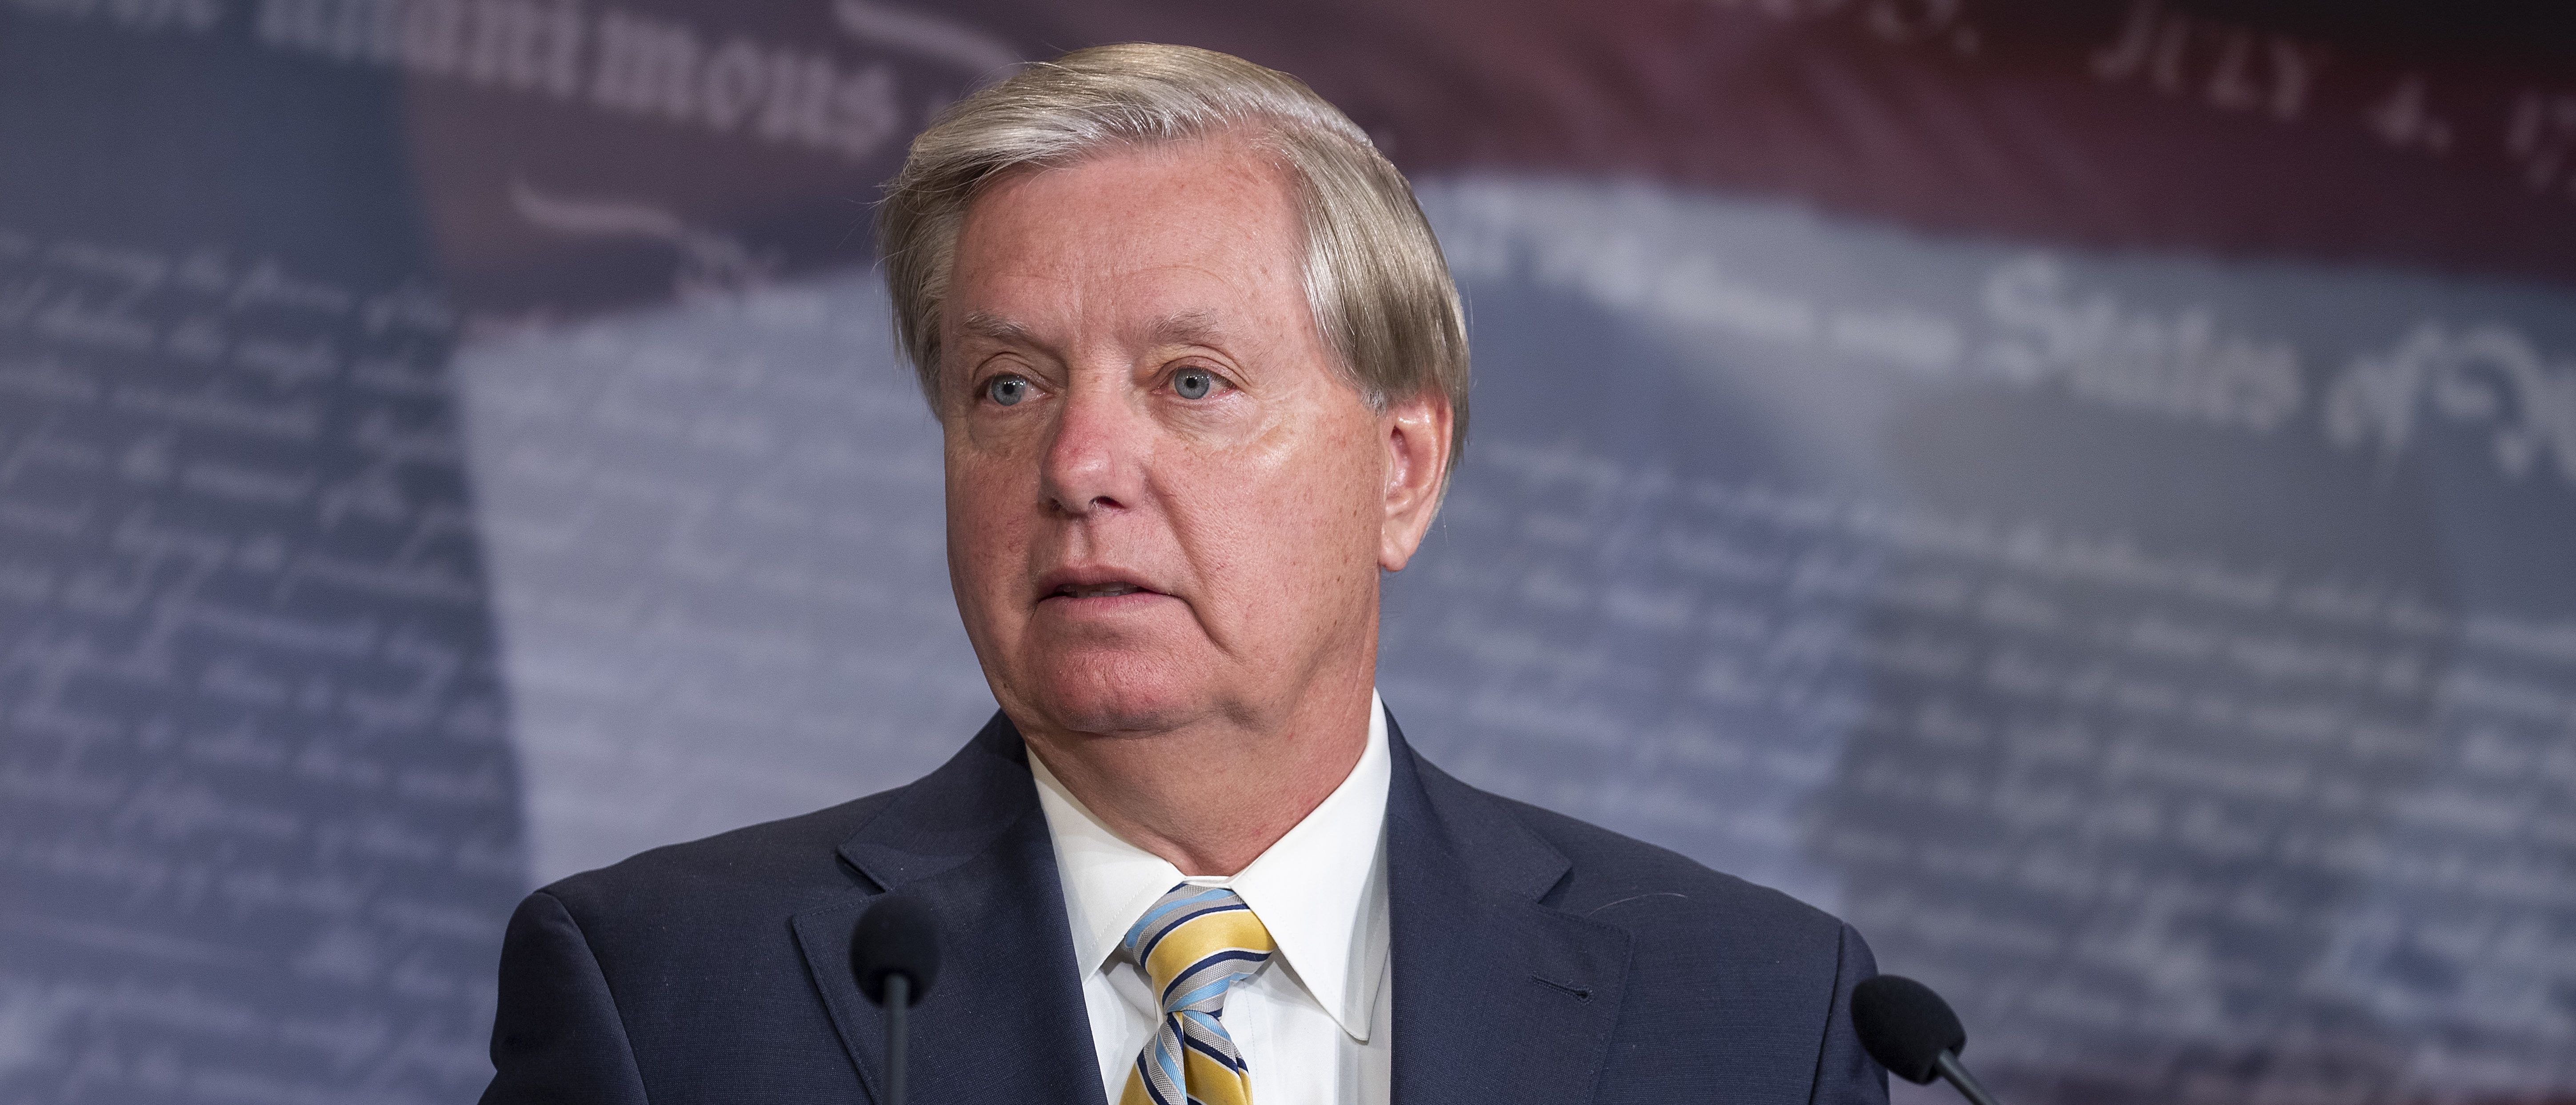 WASHINGTON, DC - JULY 01: Sen. Lindsey Graham (R-SC) attends a press conference announcing Senate Republicans' opposition to D.C. statehood on Capitol Hill July 01, 2020 in Washington, DC. The House of Representatives voted on Friday to recognize the District of Columbia as the 51st state. (Photo by Tasos Katopodis/Getty Images)